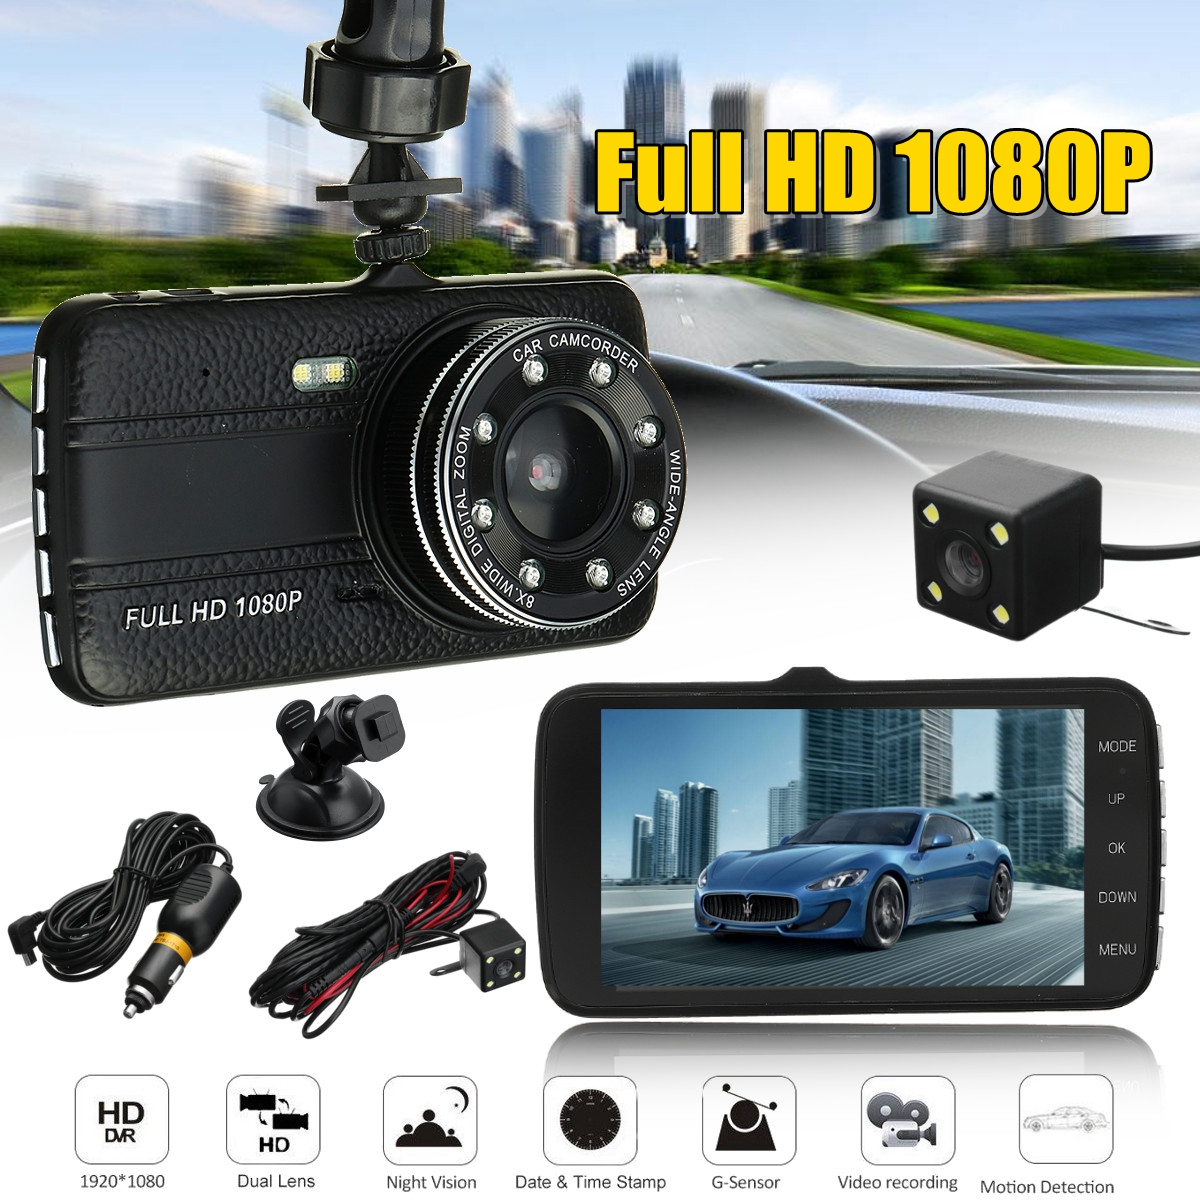 4inch Full screen IPS Screen Dual Lens Car DVR Camera Full HD 1080P Front+Rear View Camera Night Vision dash cam Parking Monitor dual lens car dvr g30b front camera full hd 1080p external rear camera 720 480p h 264 g sensor dash cam two cameras